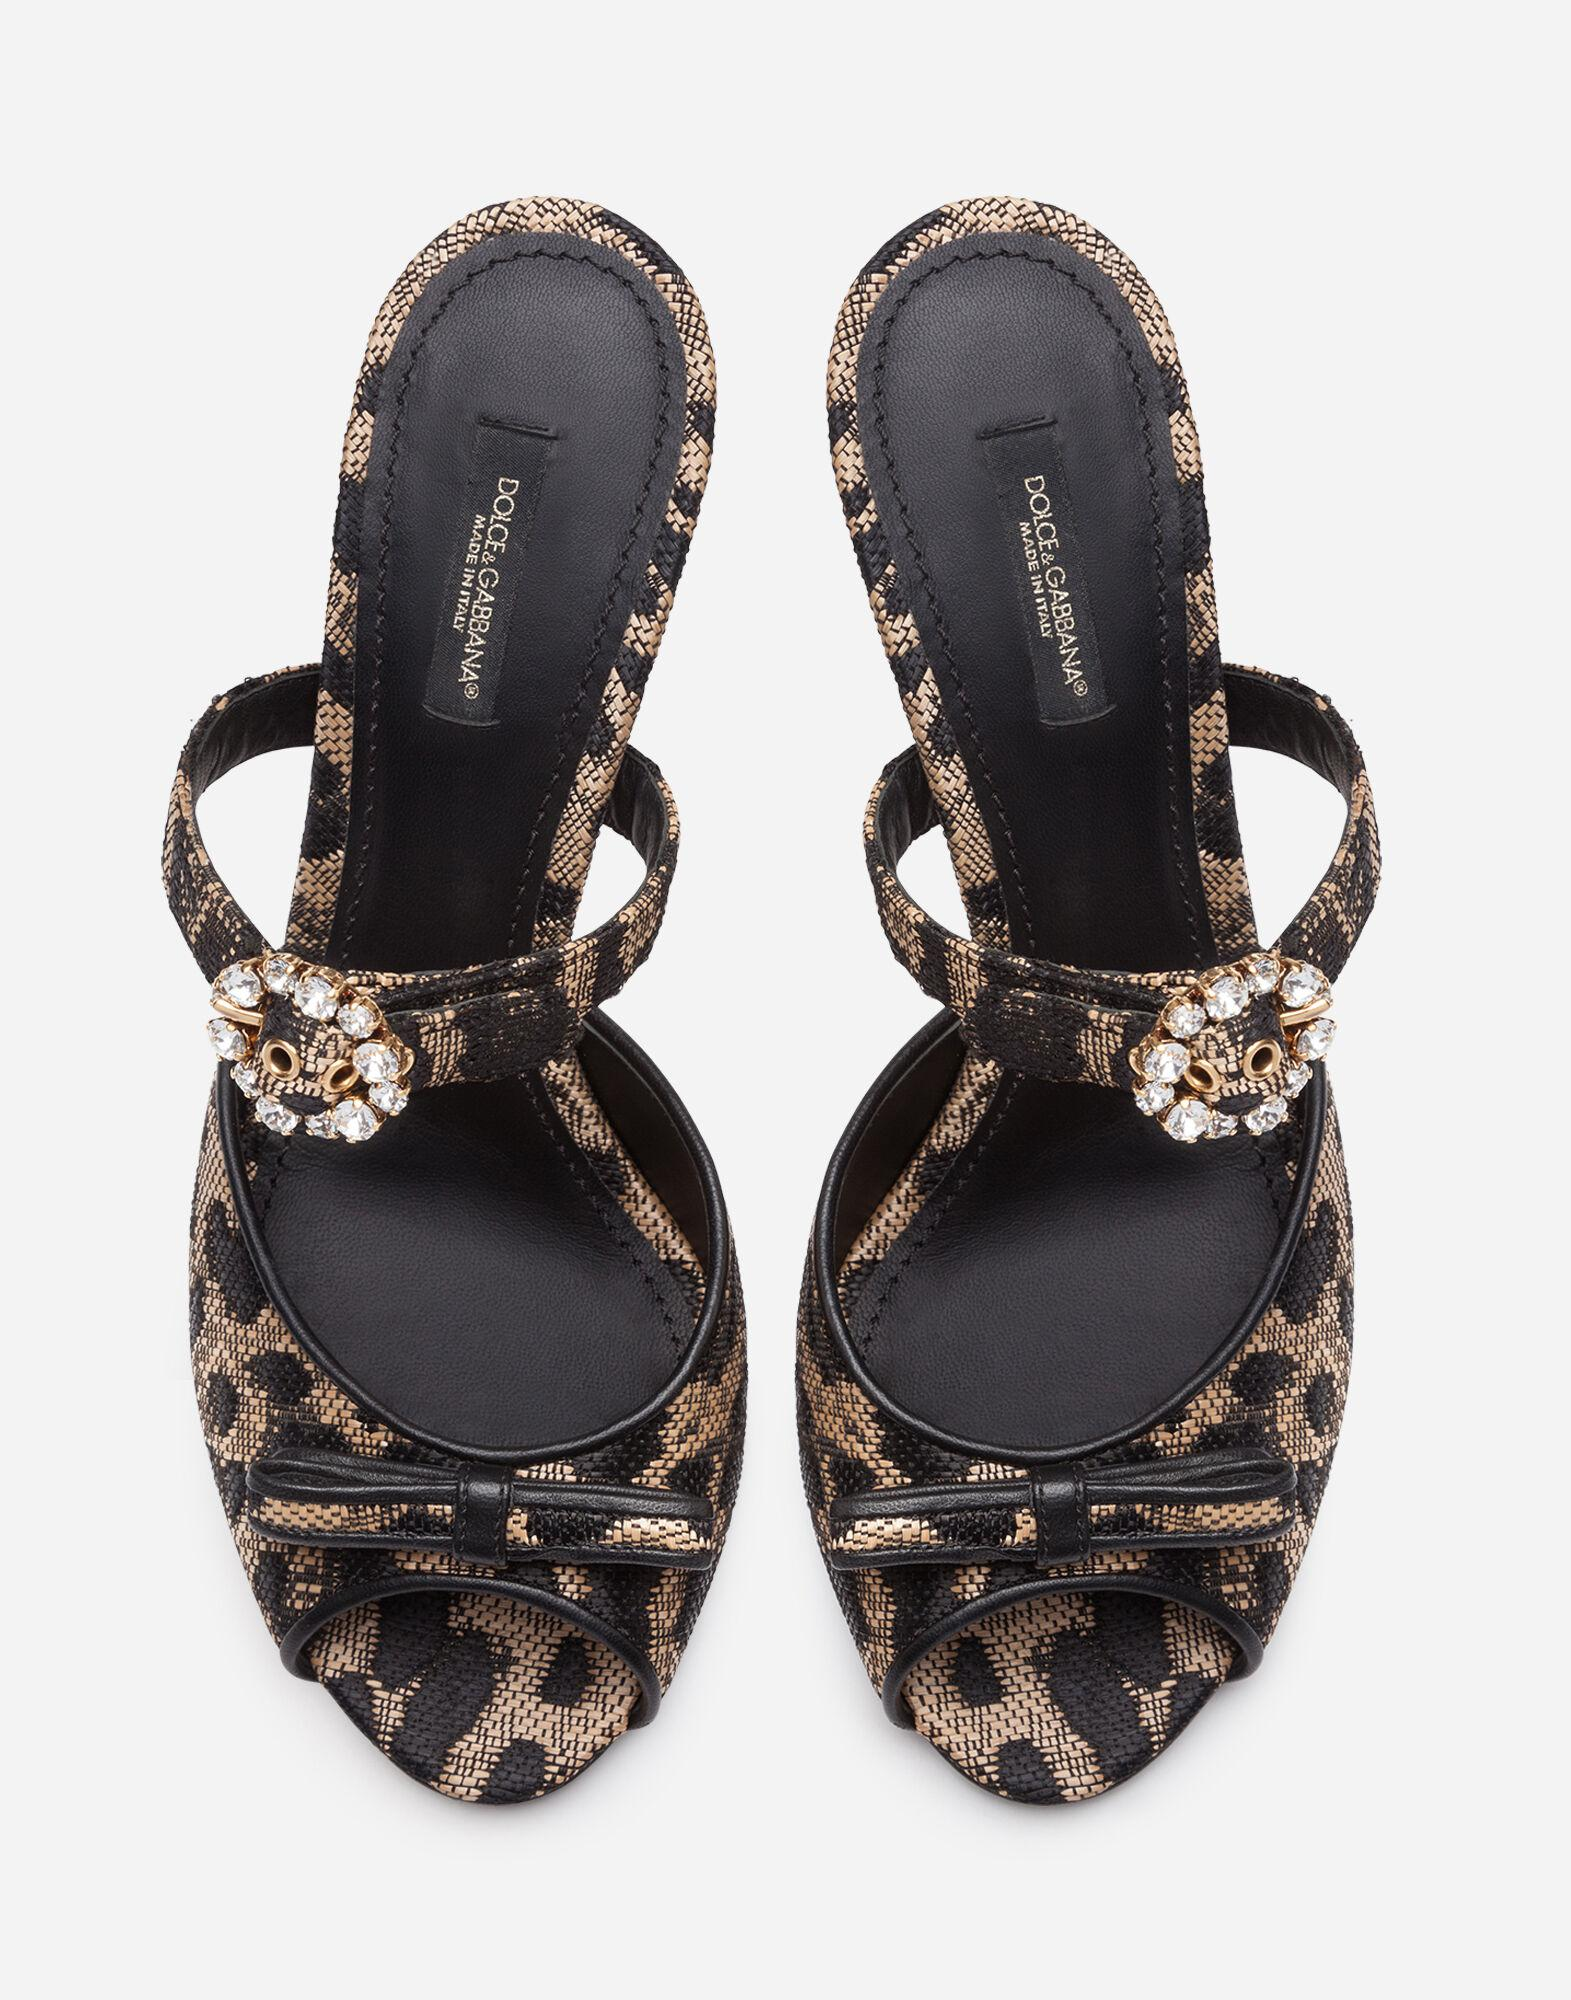 Mules in silk jacquard with leopard print and bejeweled buckle 3